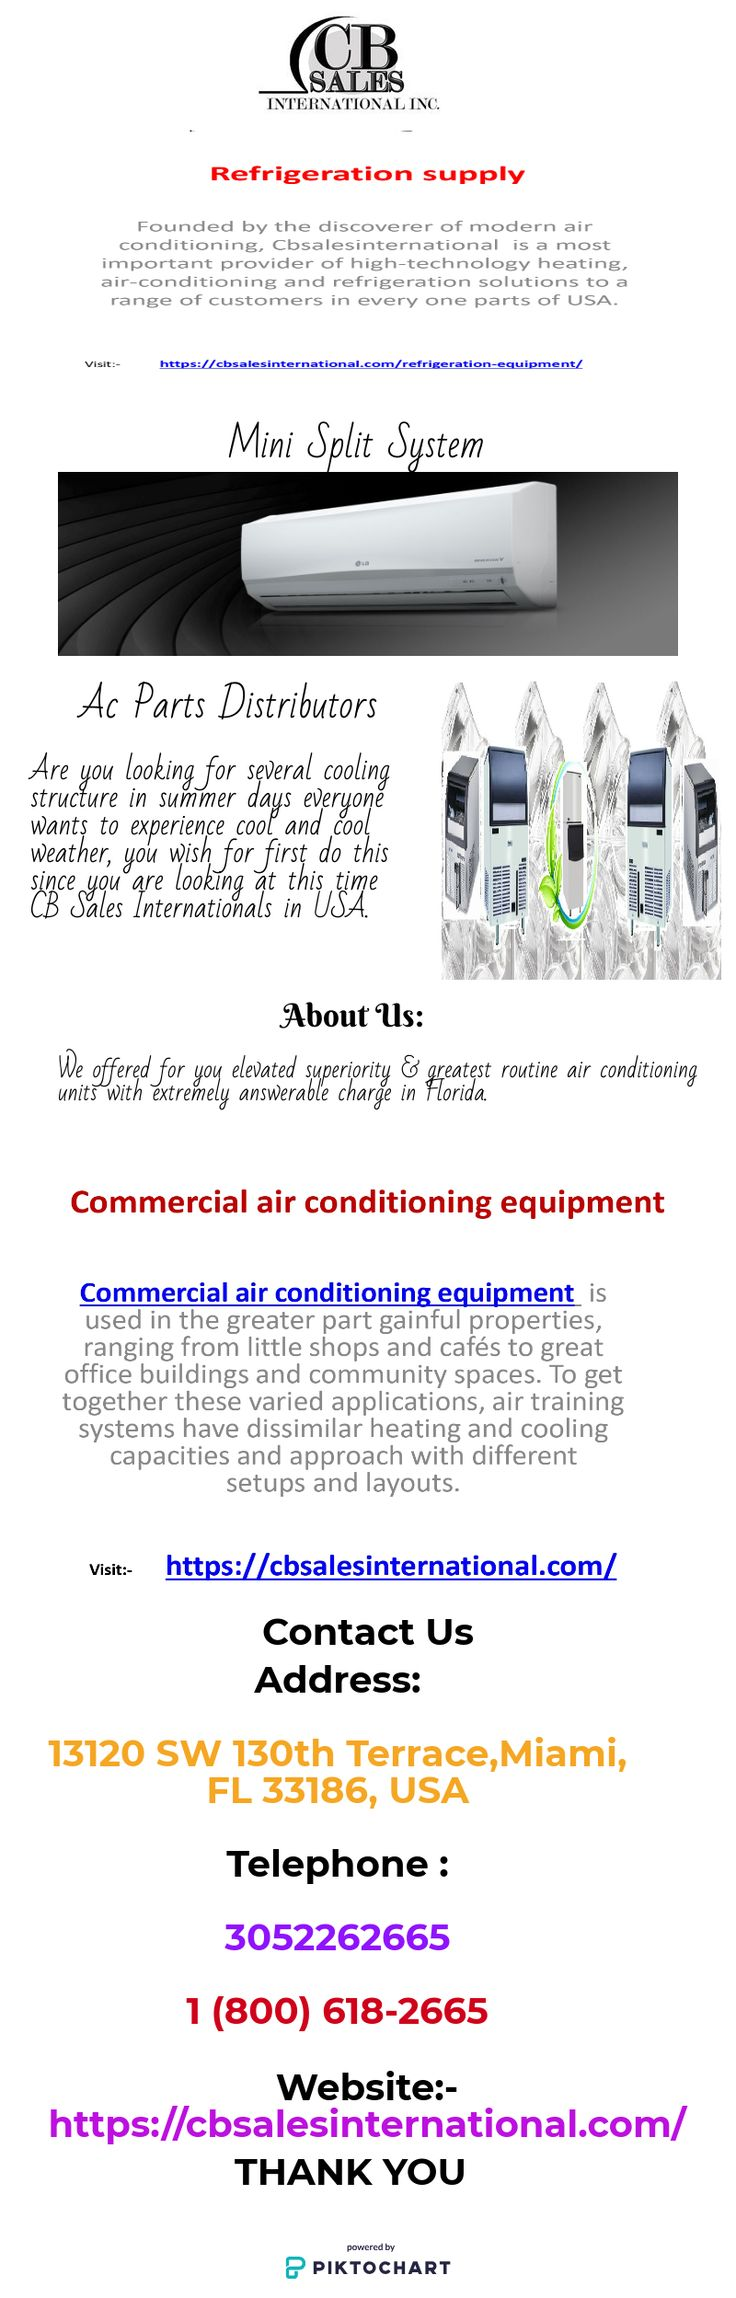 MiniSplit Air Conditioners proffer solitary and multi